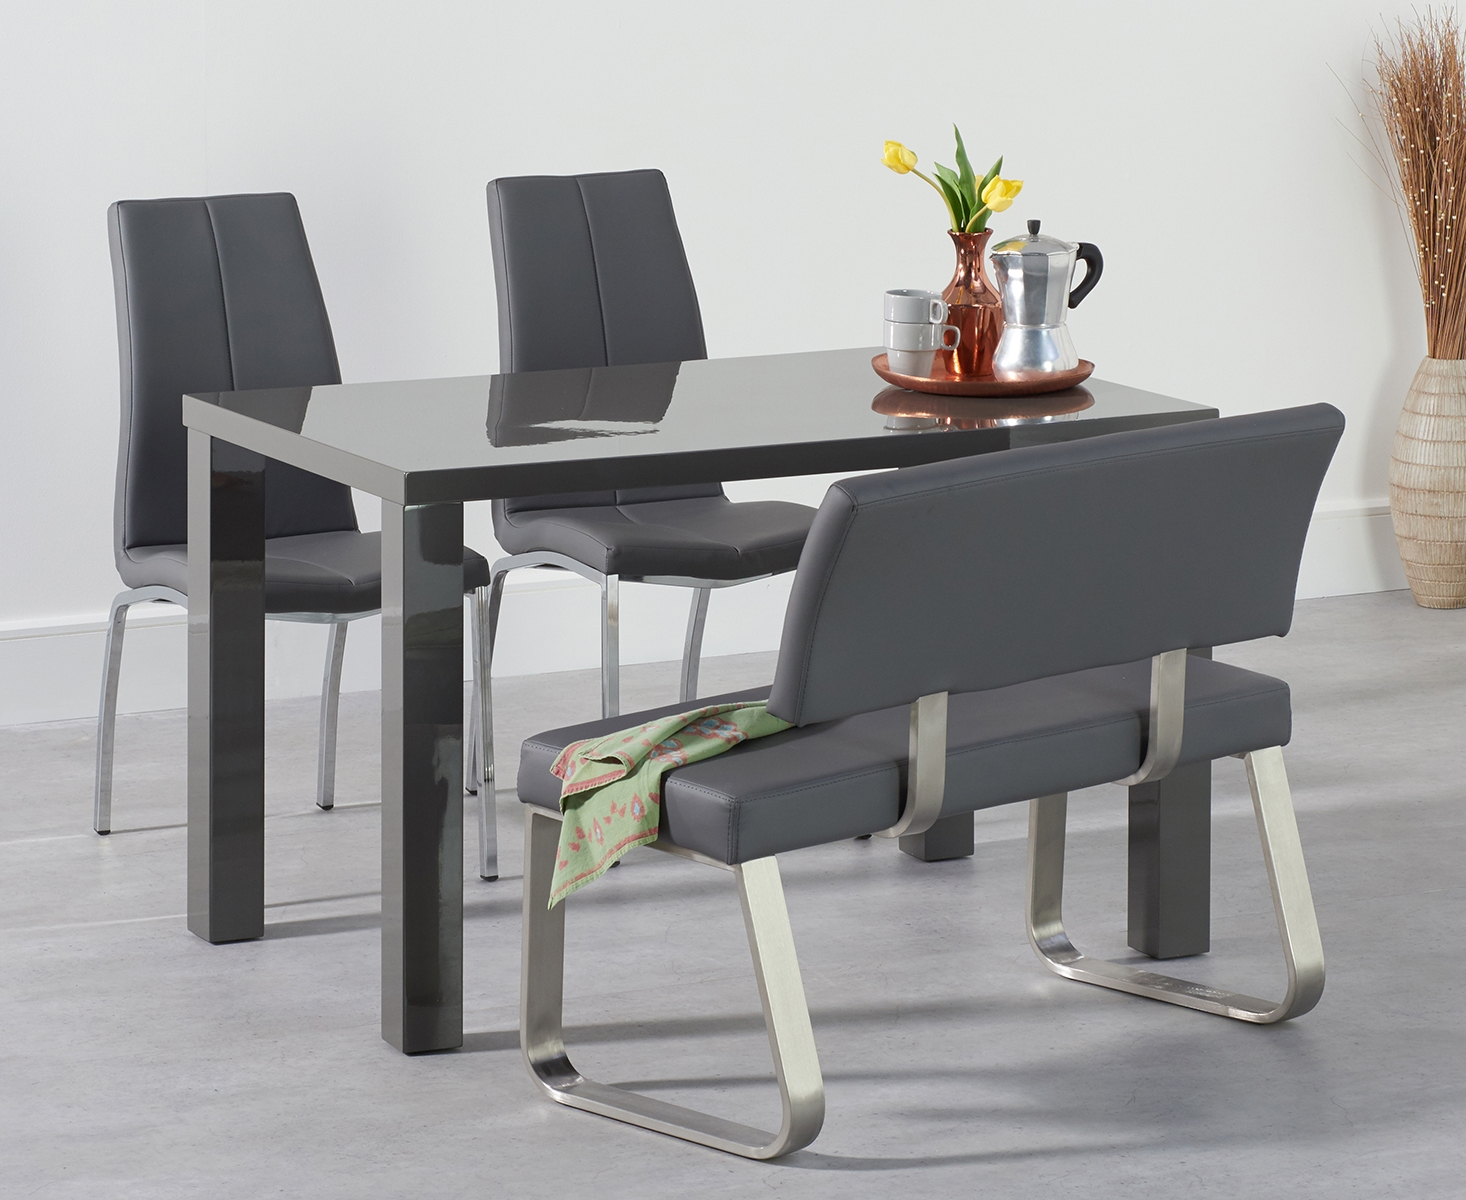 An image of Atlanta 120cm Dark Grey High Gloss Dining Table with Cavello Chairs and Malaga G...